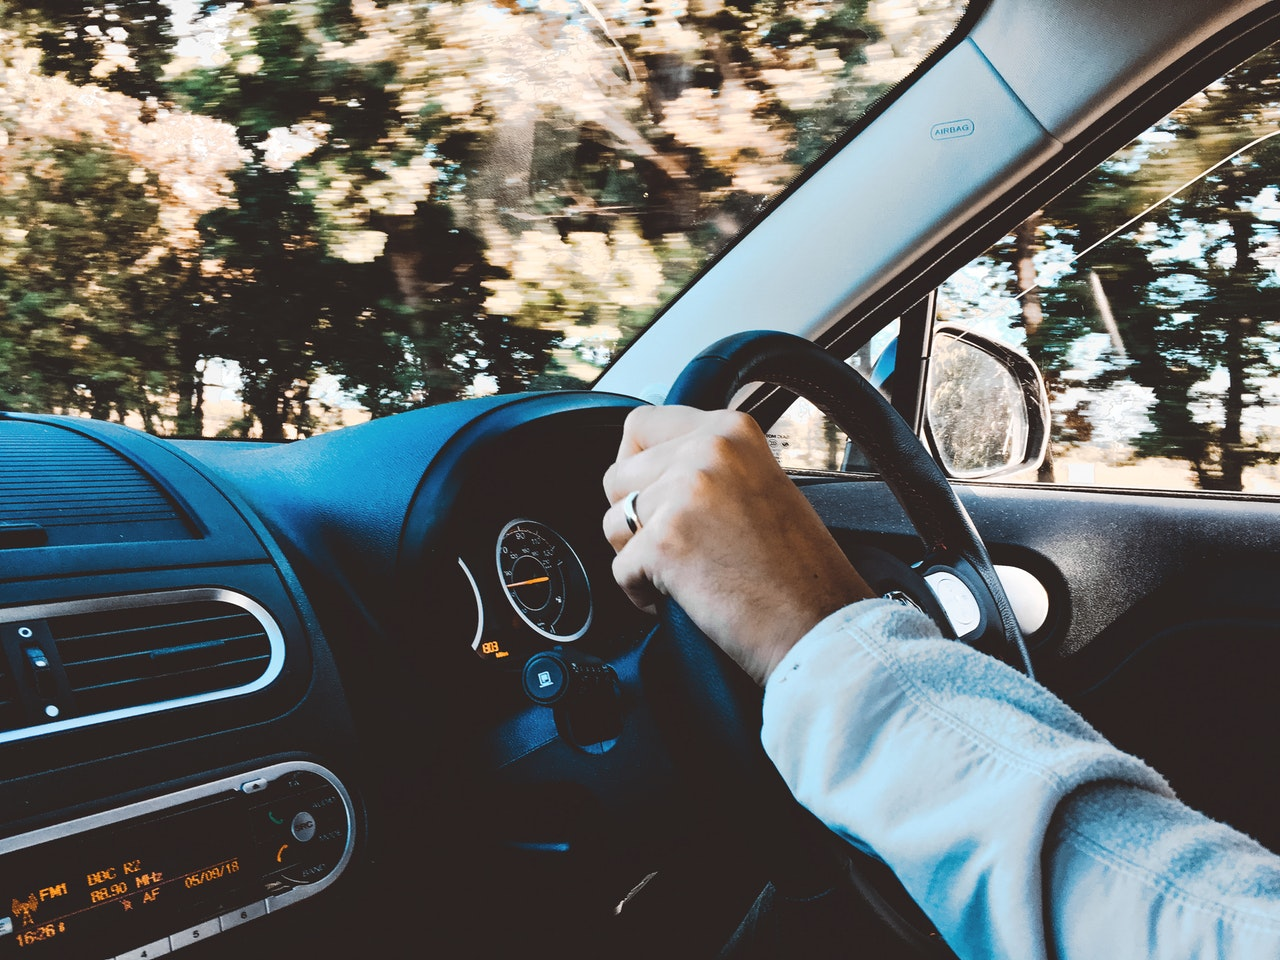 man with his hand on a steering wheel of a car